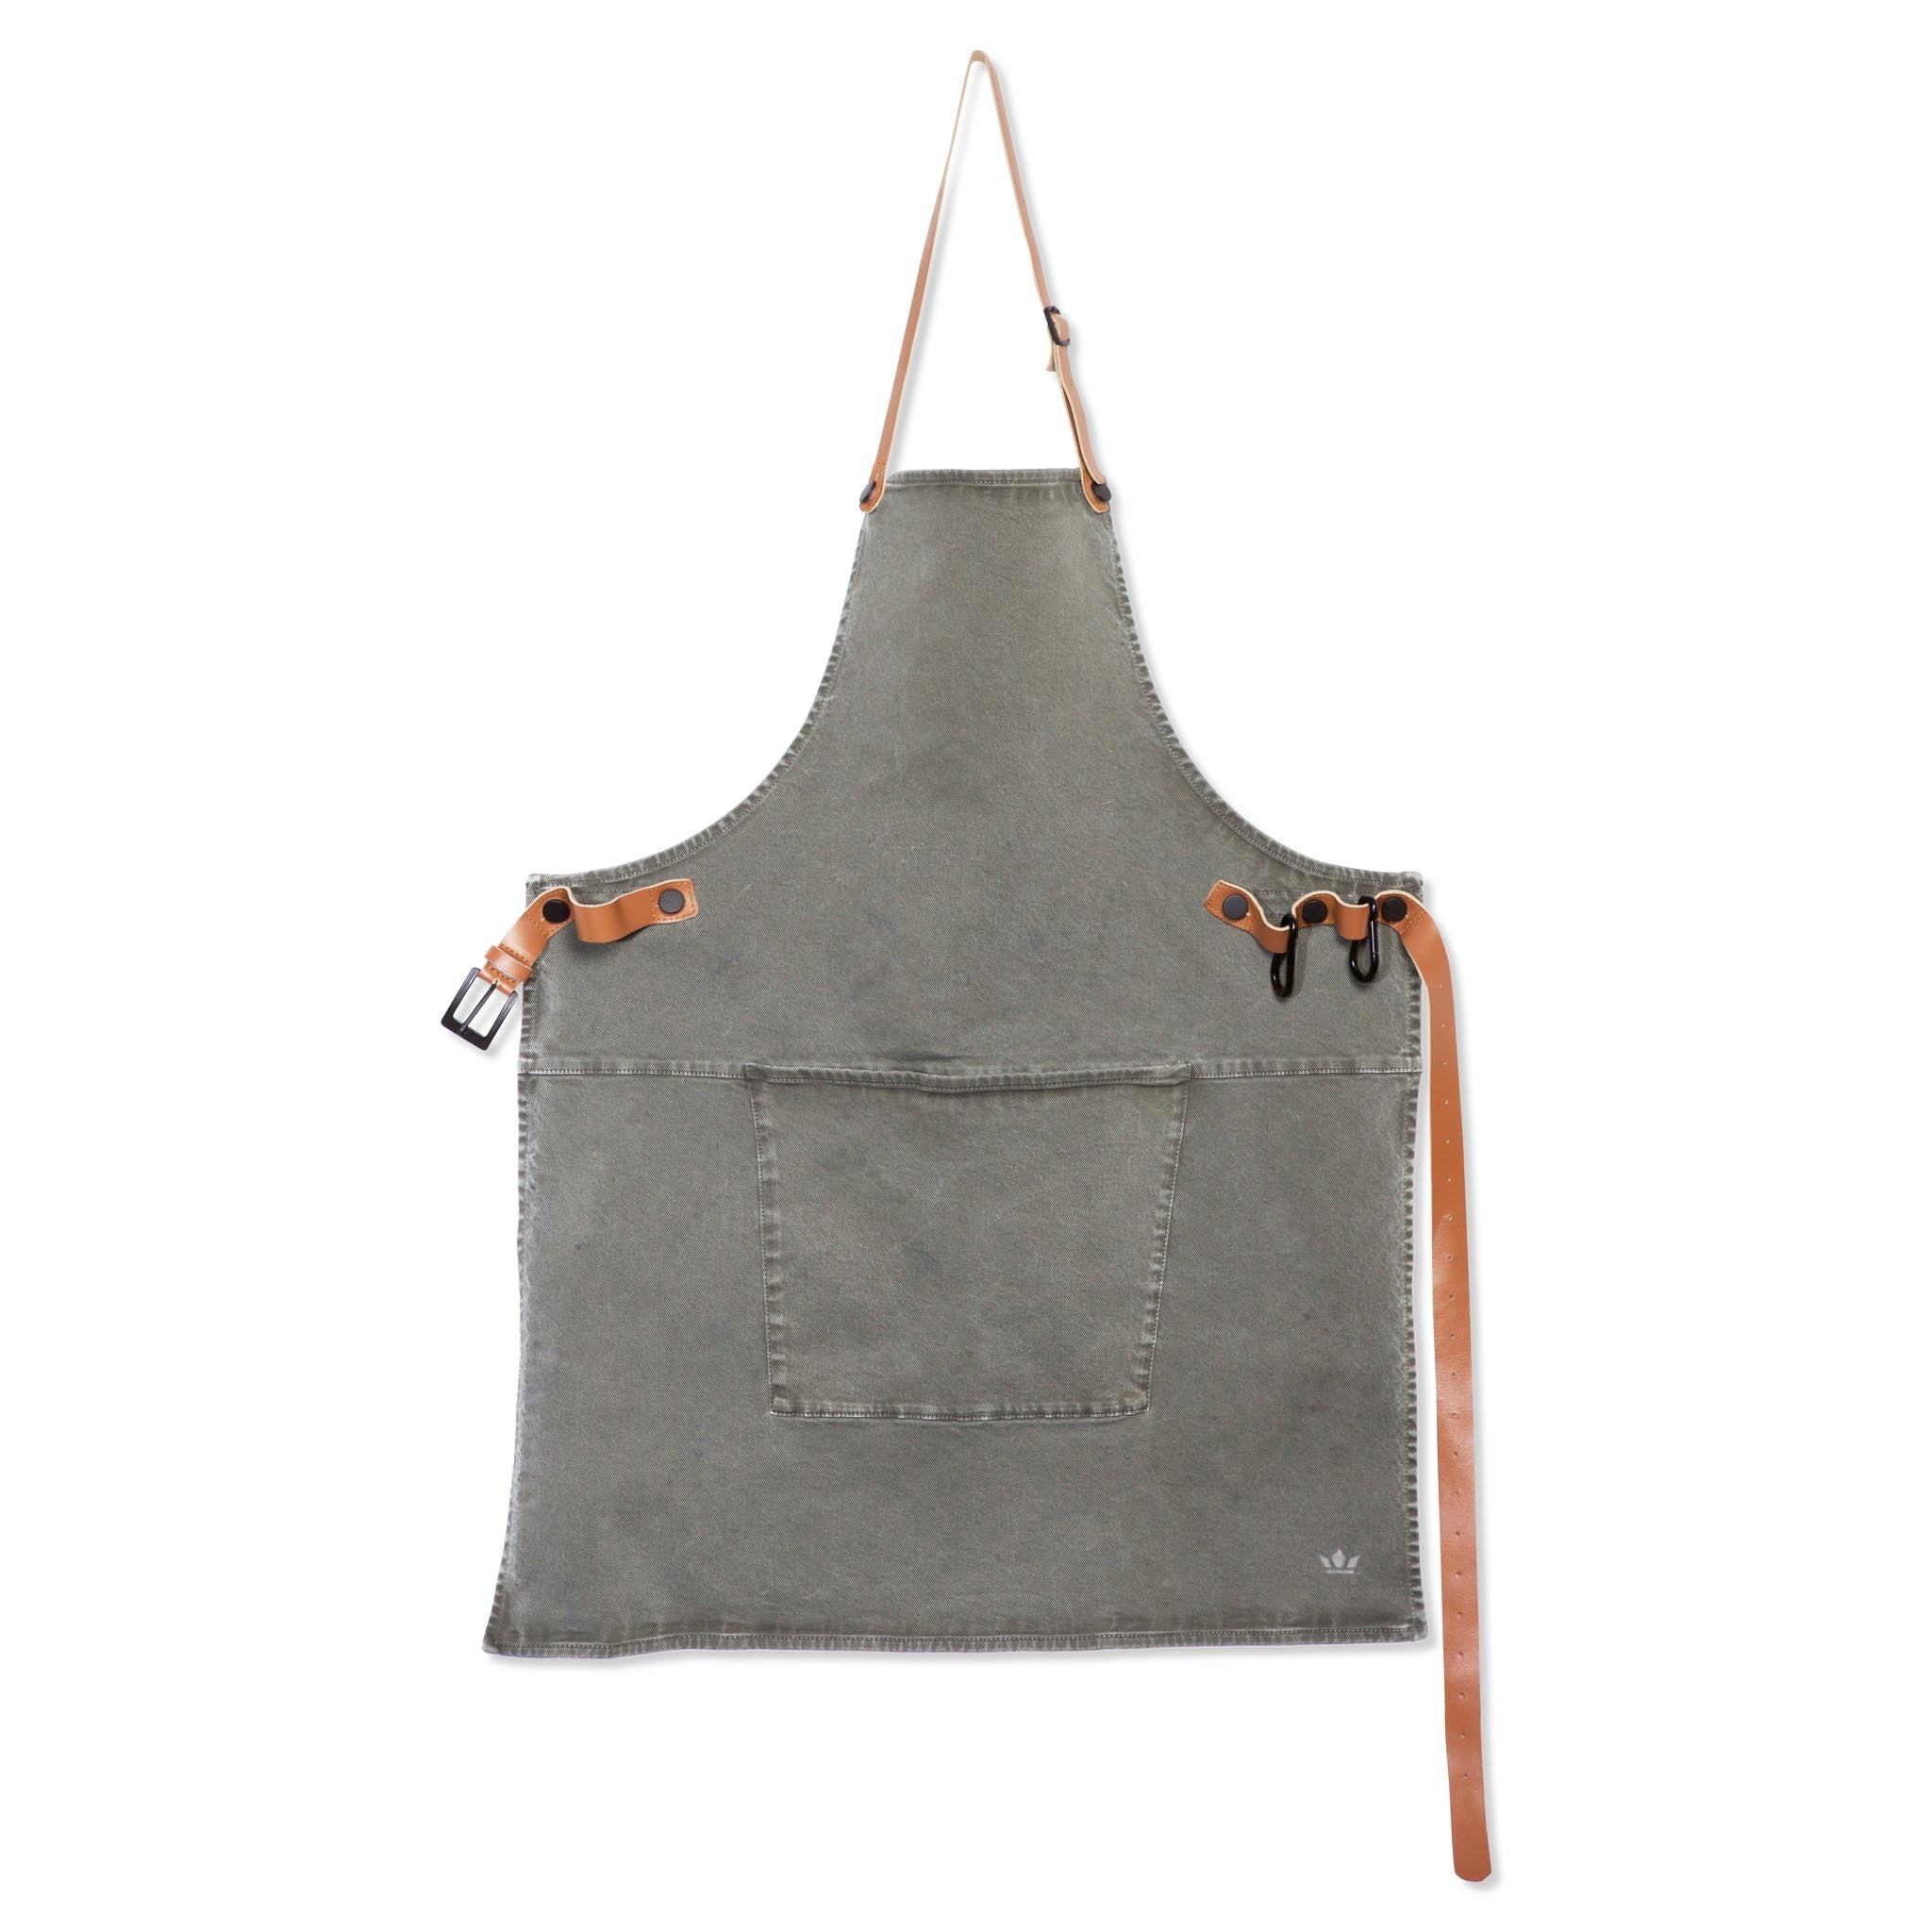 Dutchdeluxes Canvas BBQ Apron in Grey-Green Cookware Kitchen Clothing